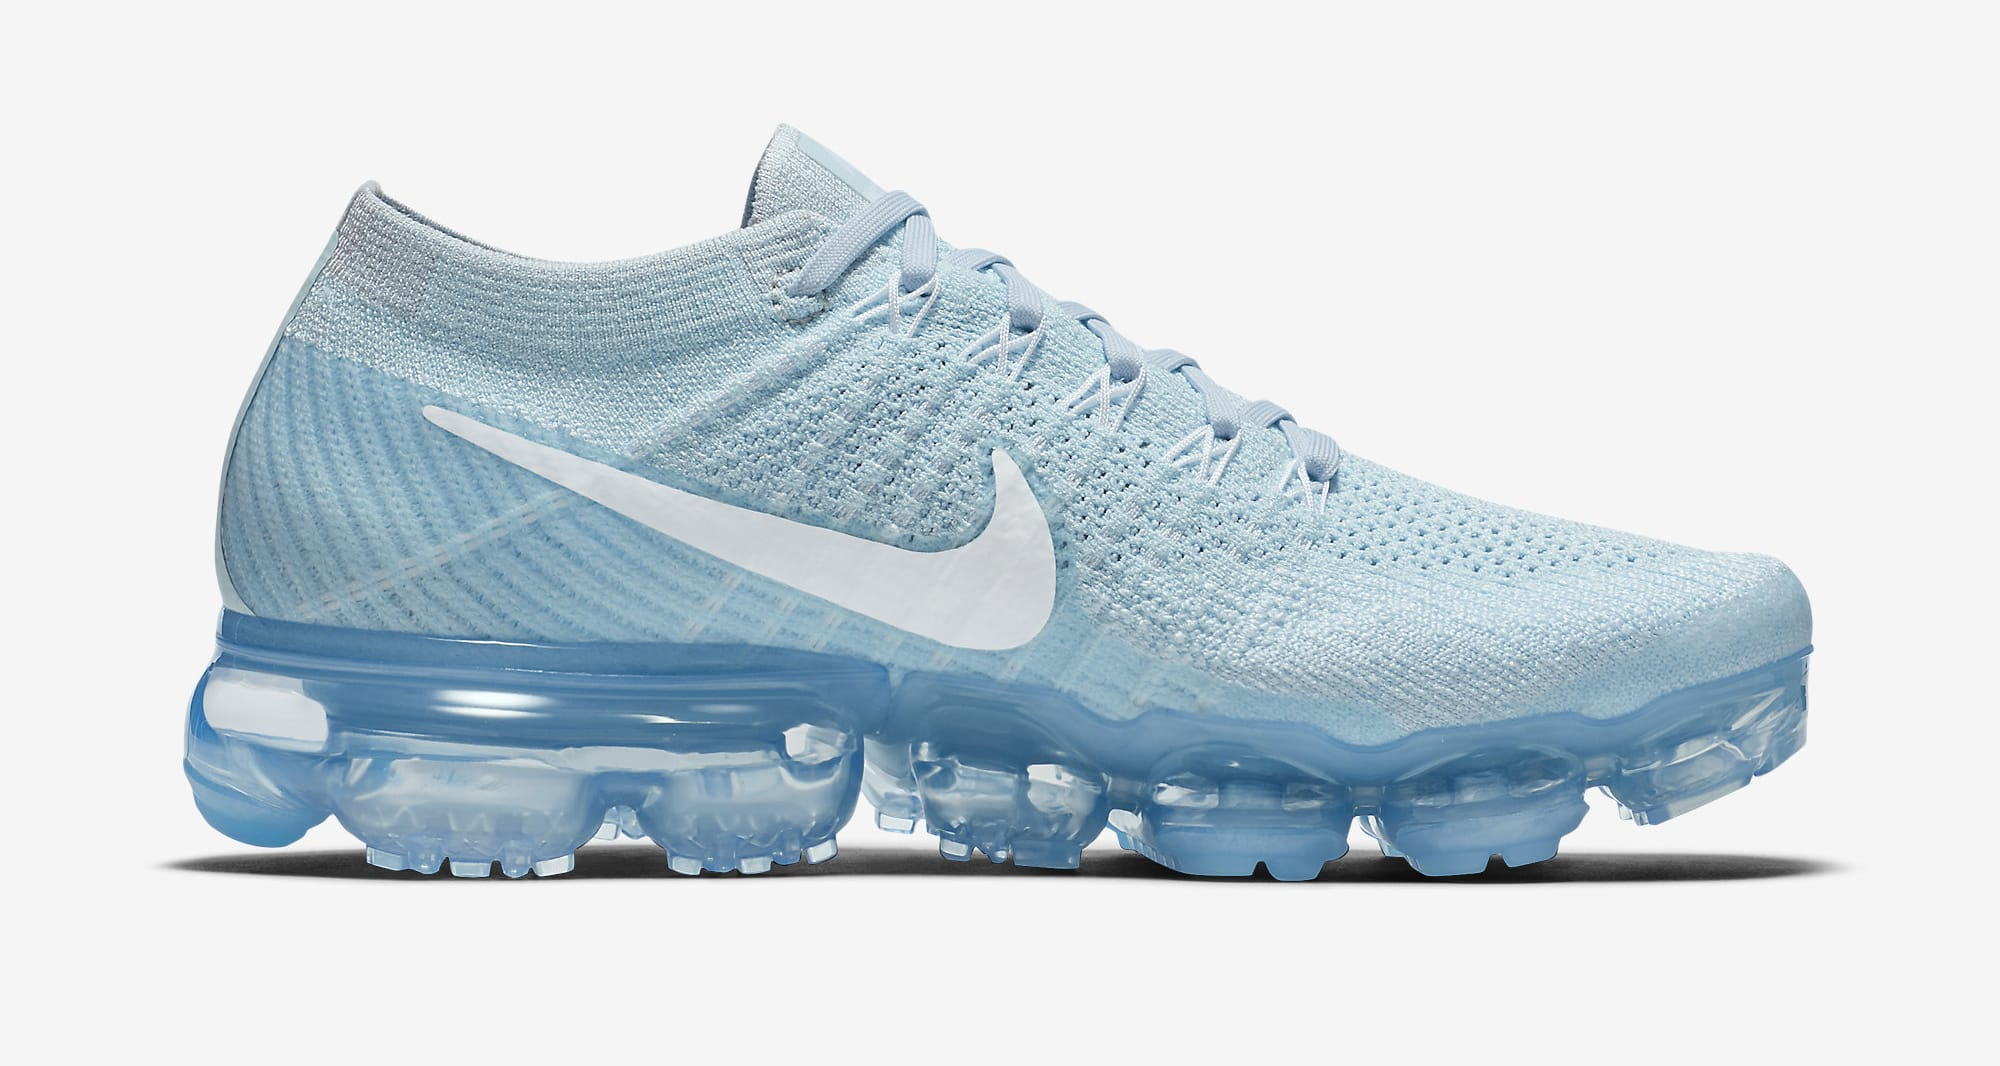 buy online 44ec1 939a6 Buy Nike Cheap Air Vapormax Flyknit Running Shoes Sale ...